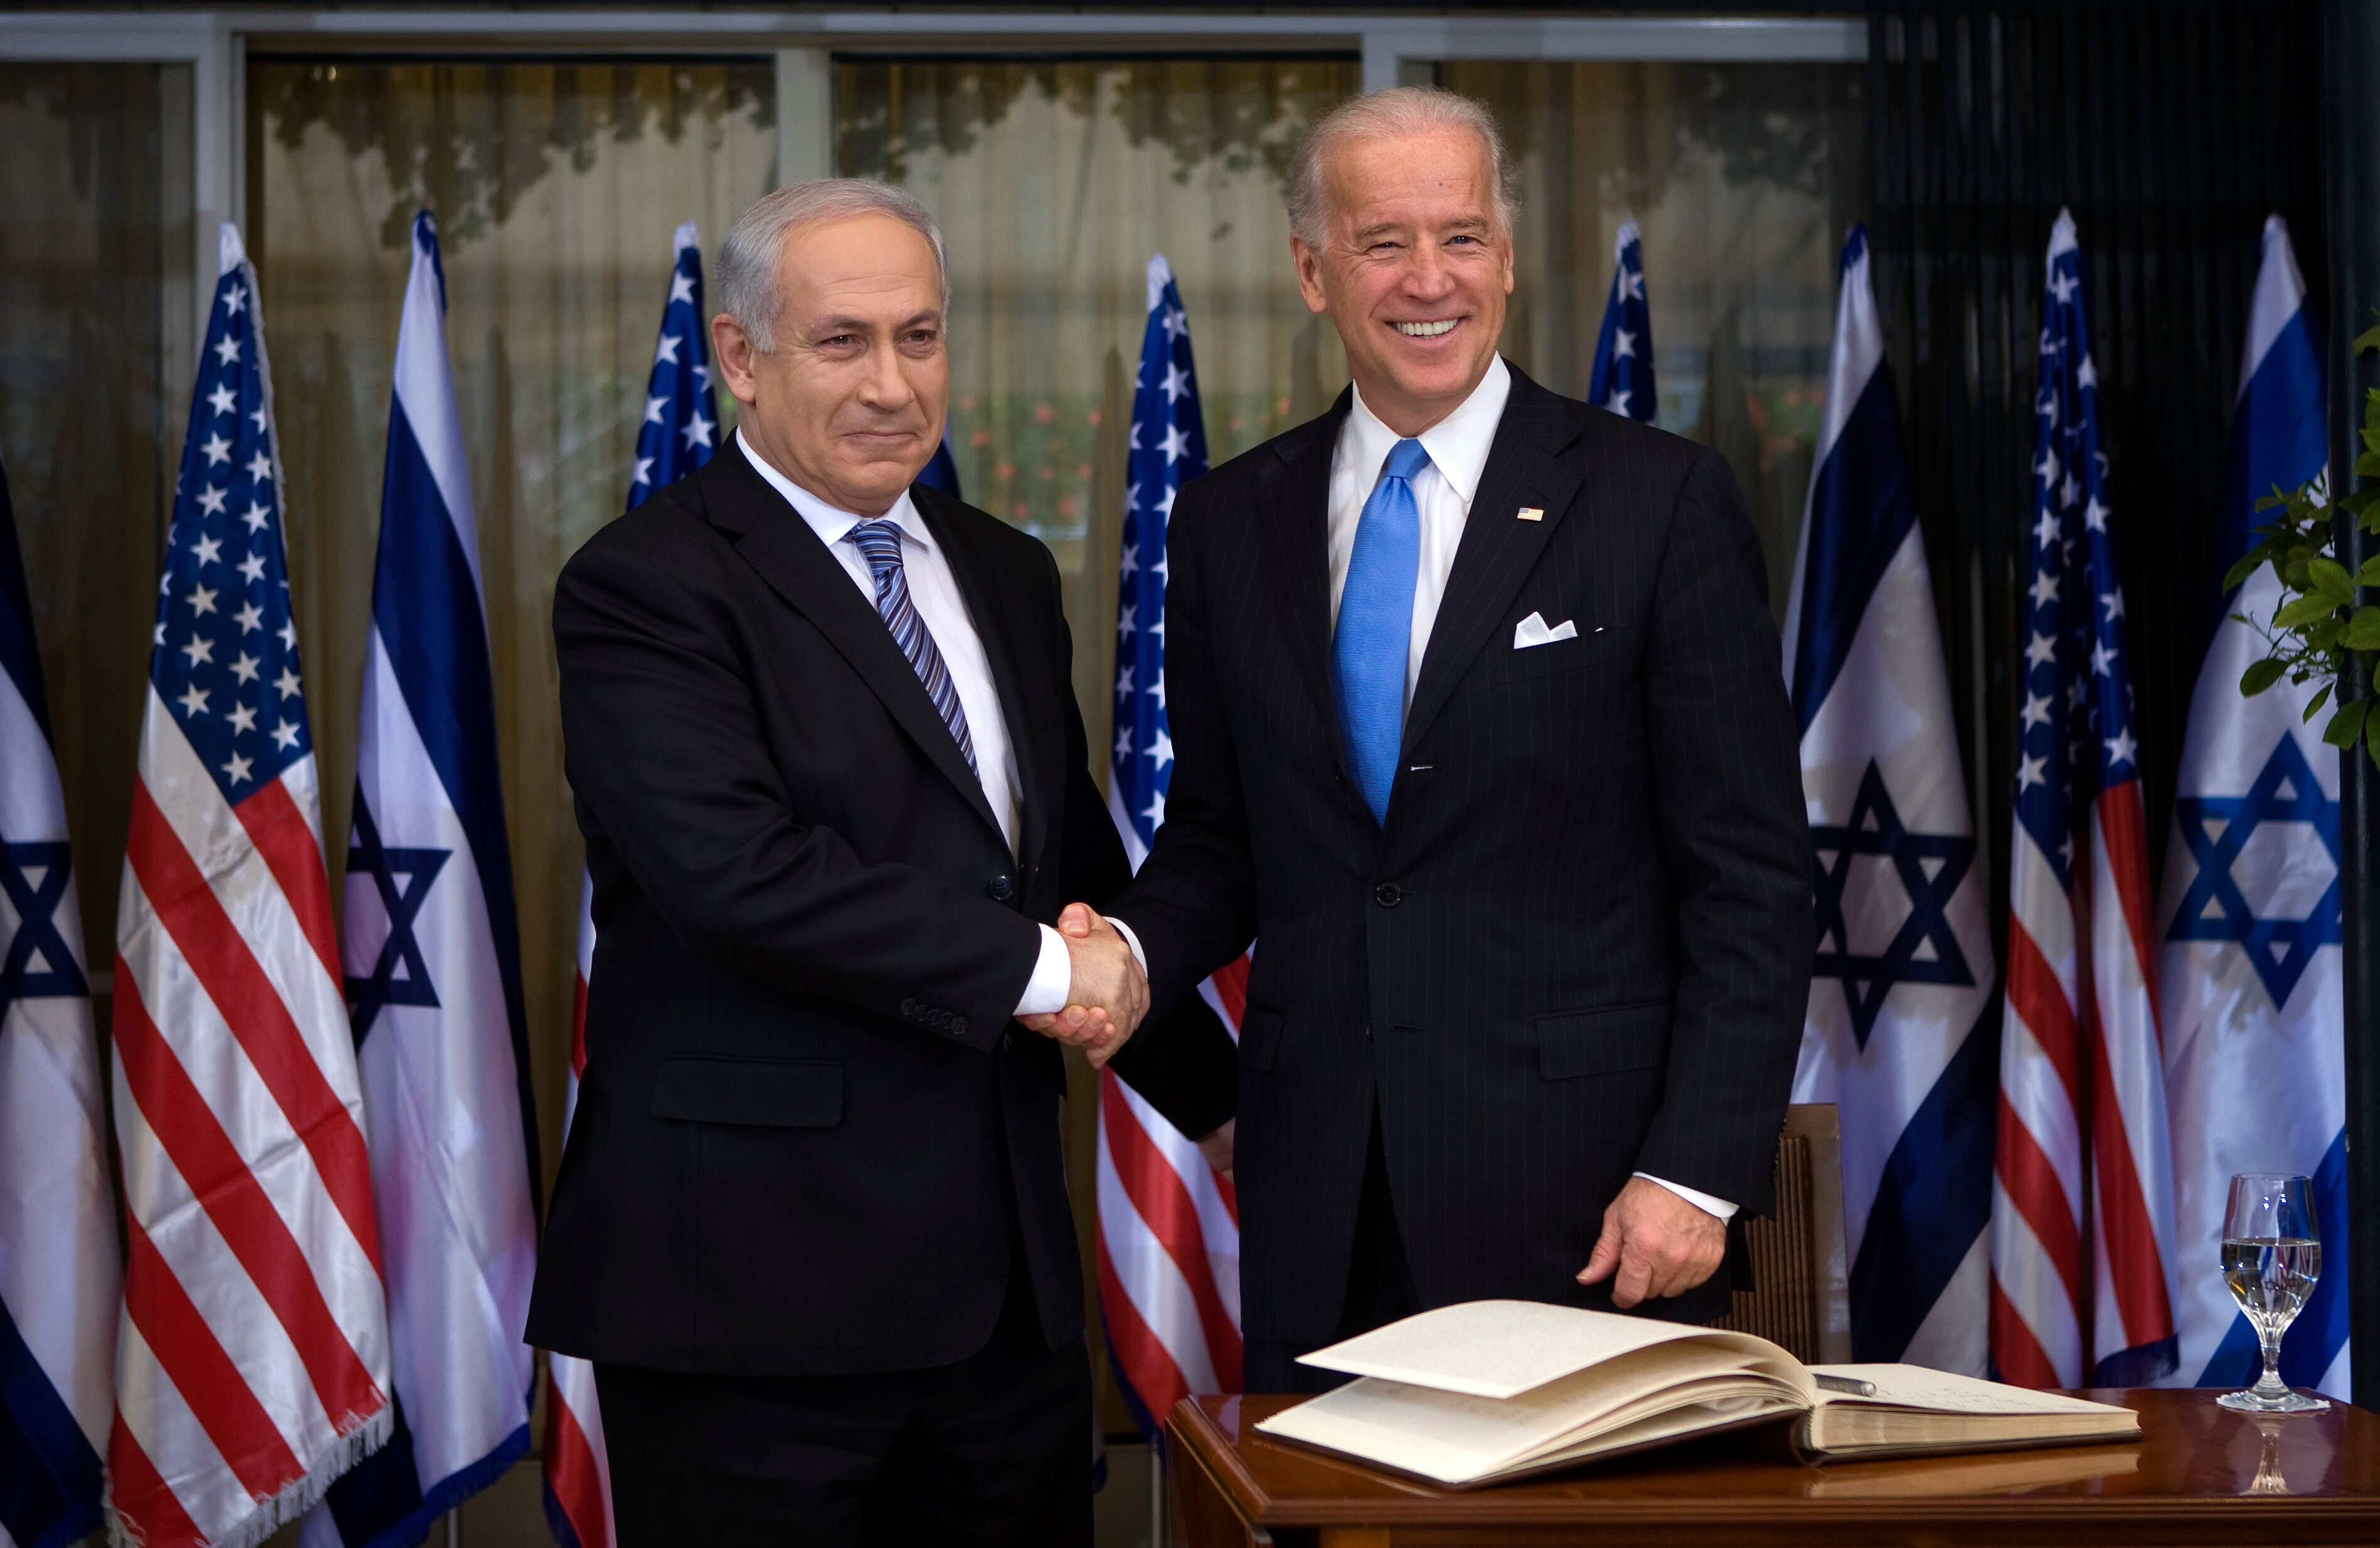 President Joe Biden, right, greets Israeli Prime Minister Benjamin Netanyahu in March 2010. Some U.S. foreign policy hands ar